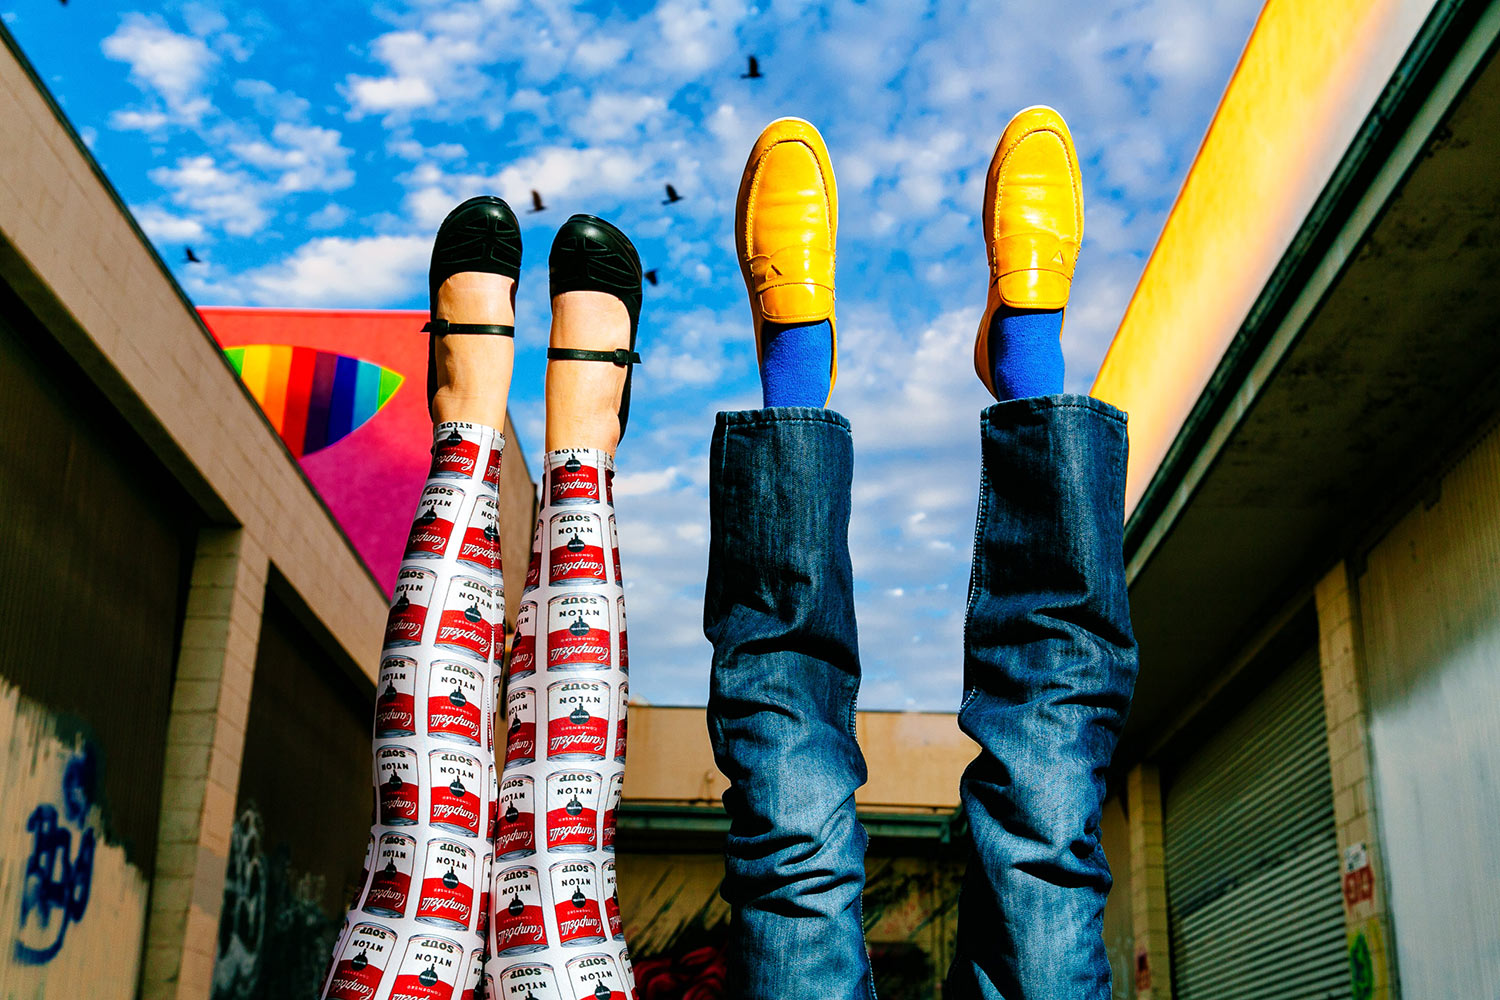 Fun photo of couple with colorful pants and shoes, feet up, by Callaway Gable